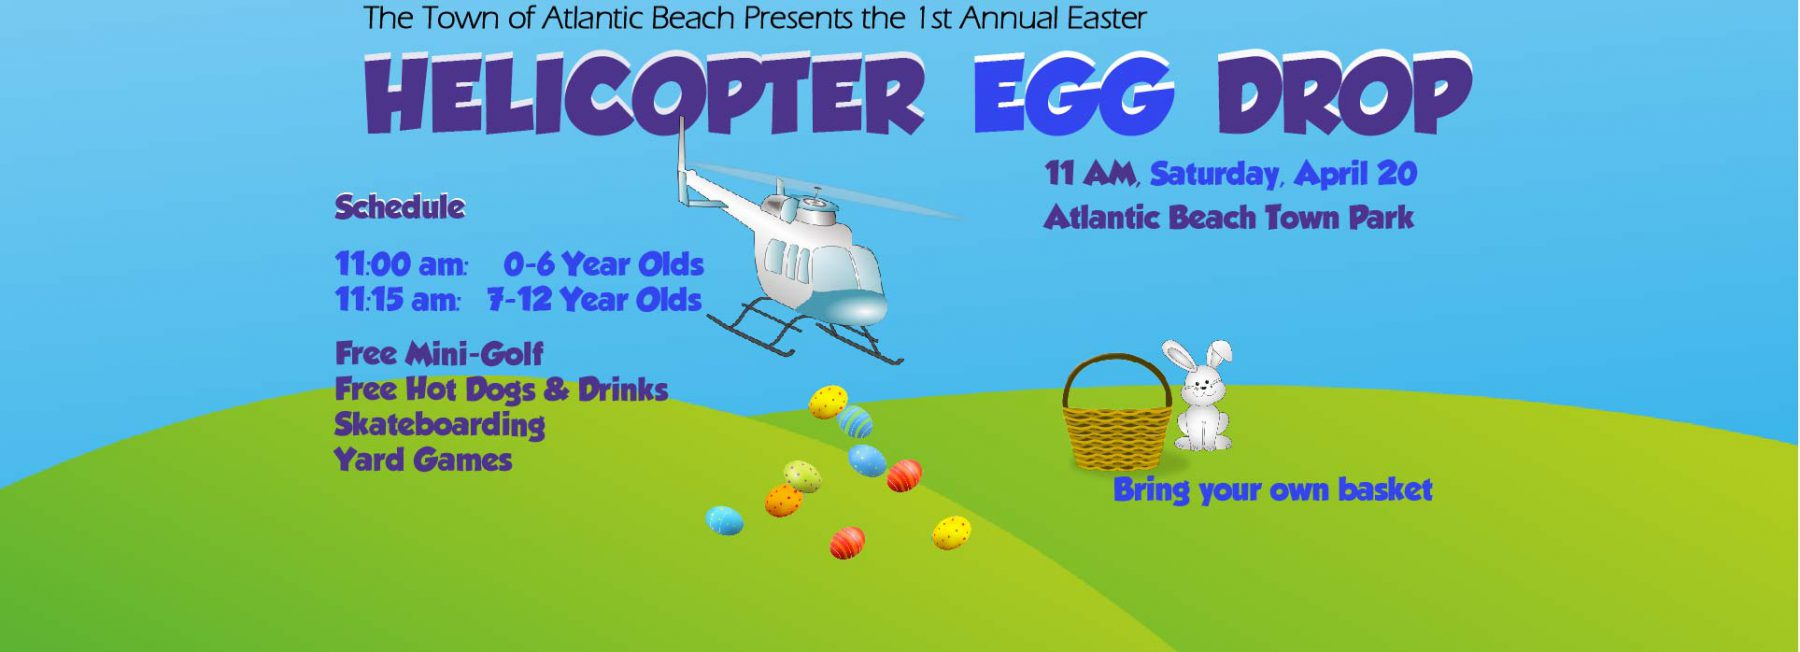 Easter Helicopter Egg Drop